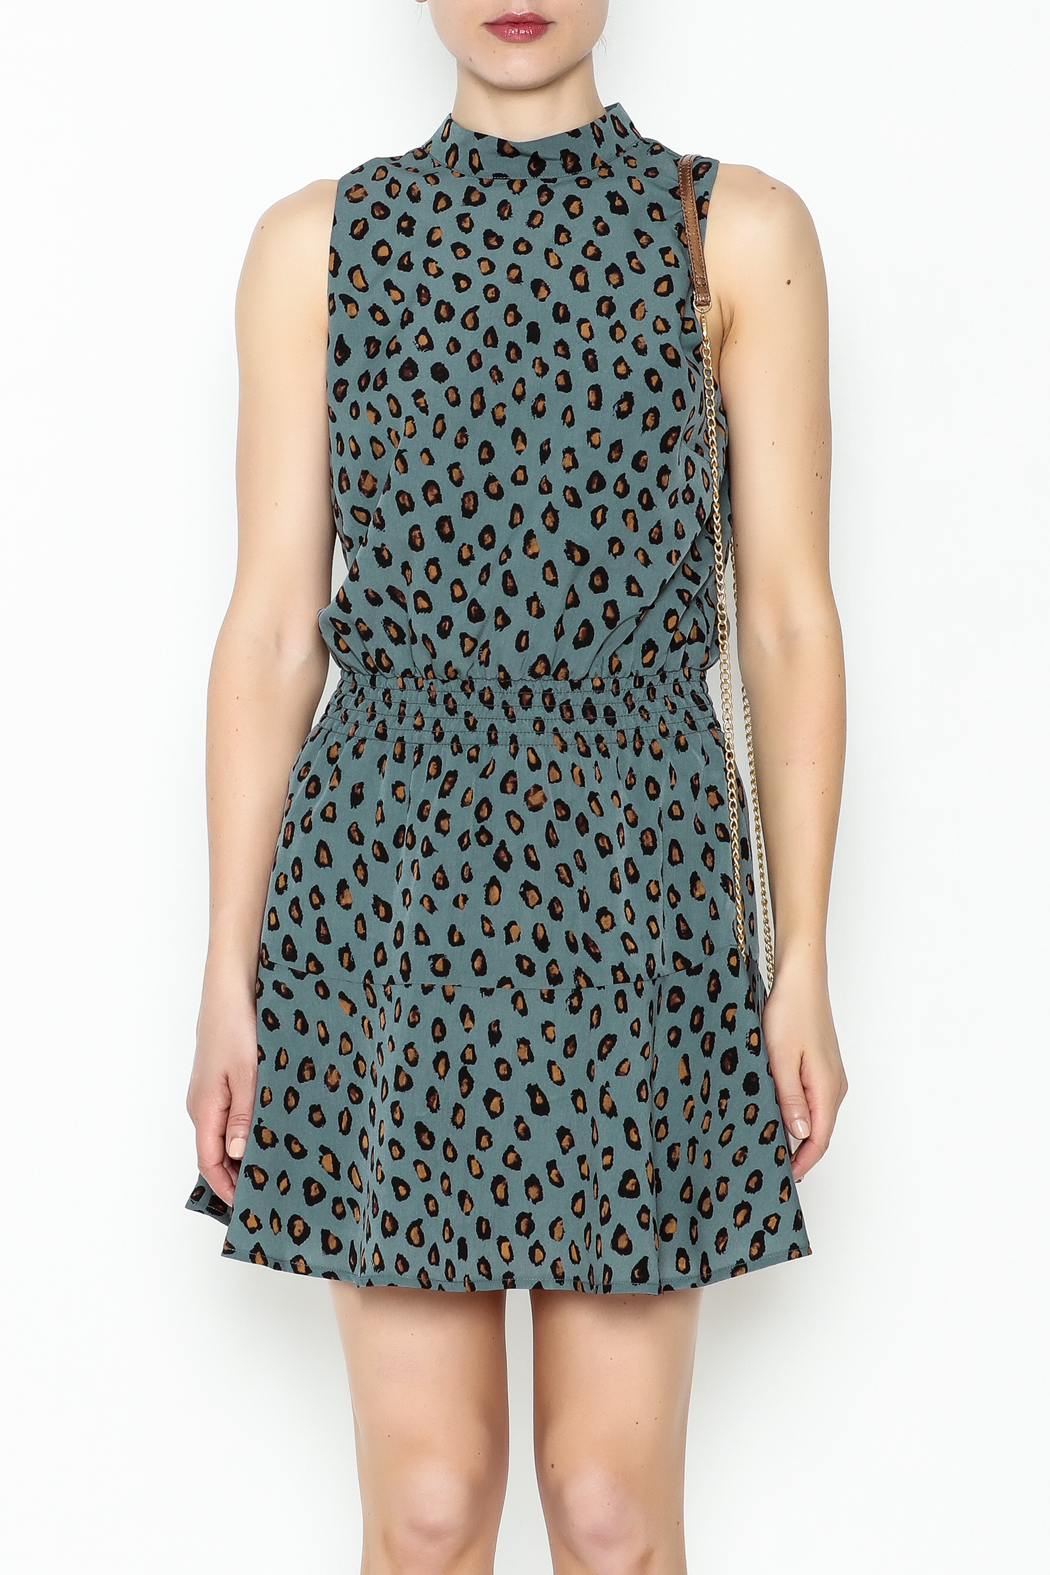 Cupcakes and Cashmere Waist Leopard Dress - Front Full Image